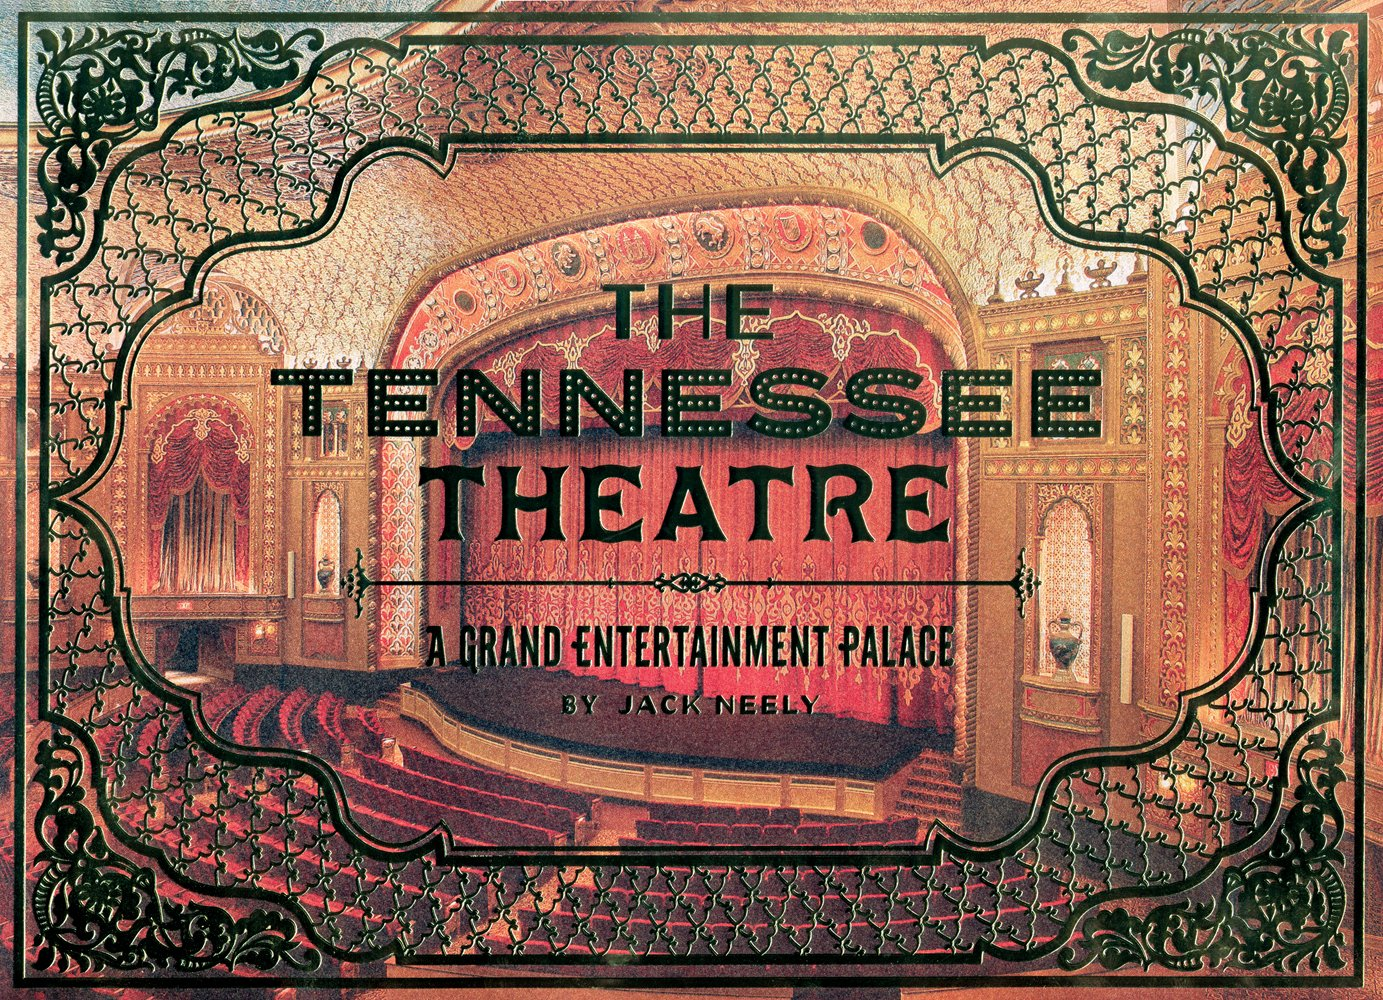 The Tennessee Theatre: A Grand Entertainment Palace